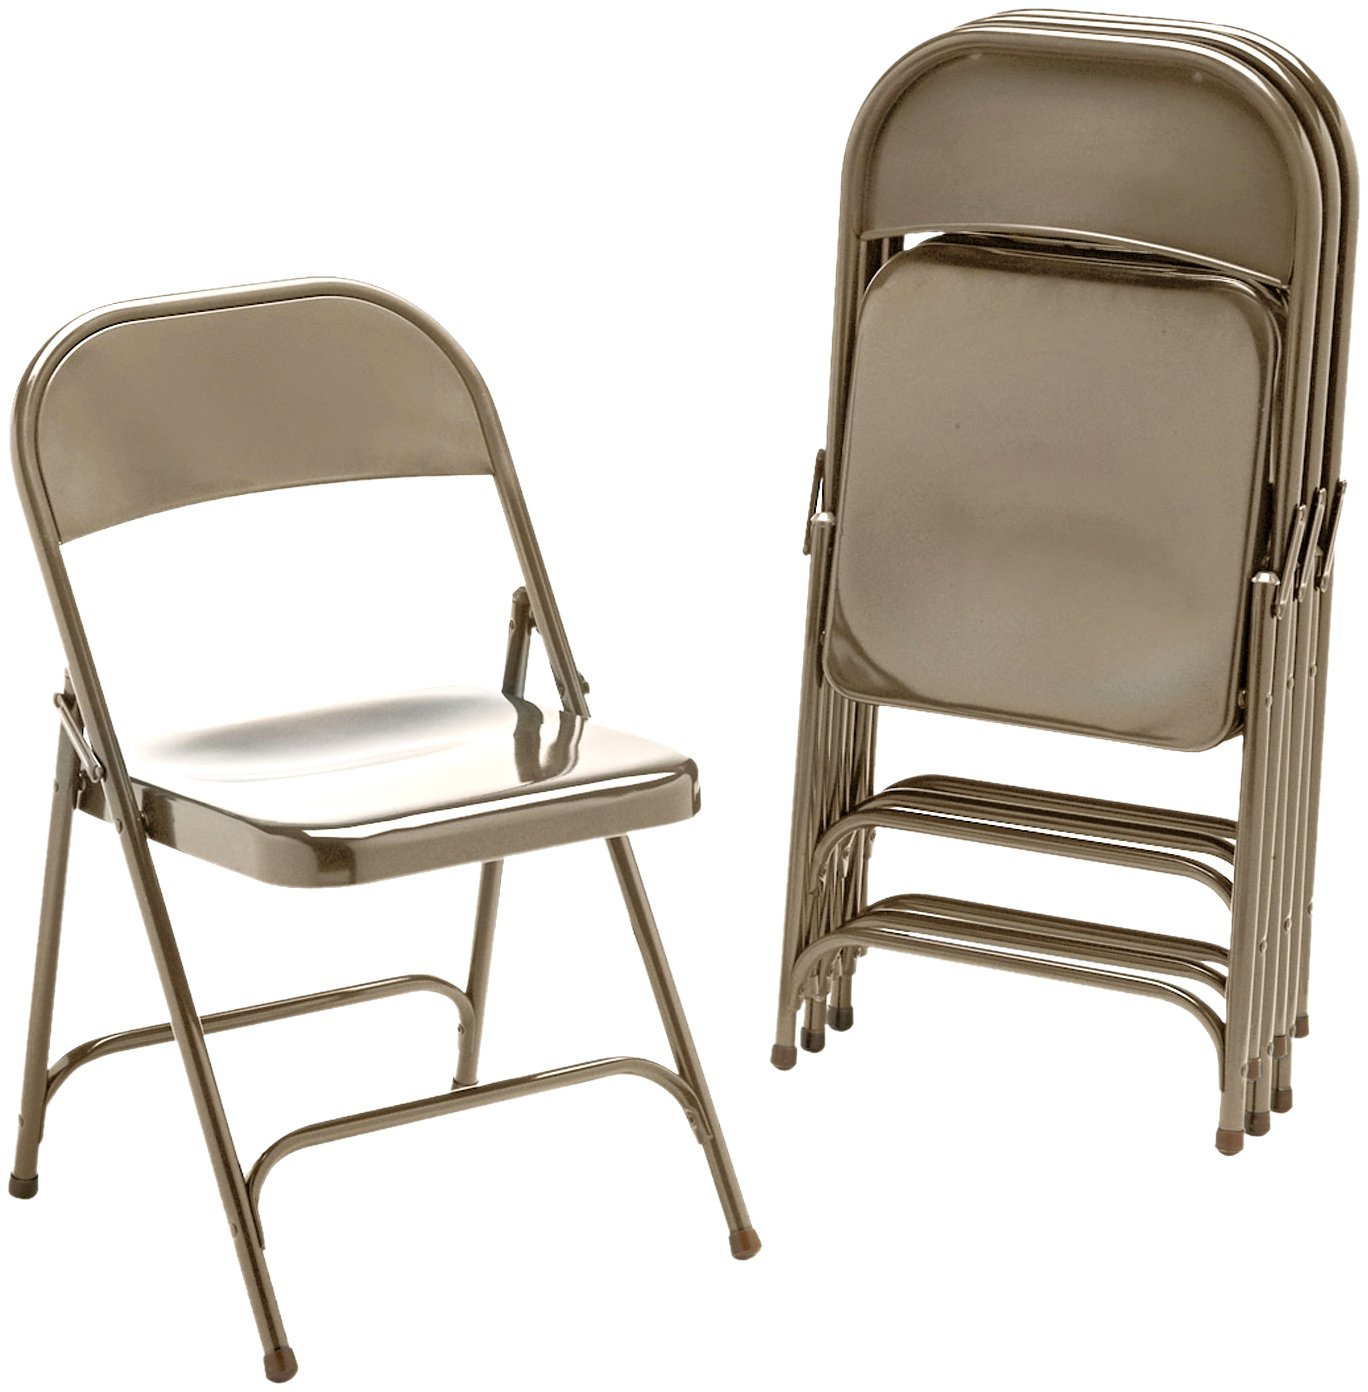 Gentil Virco 16213M Metal Folding Chairs, Mocha, Four/carton   Walmart.com